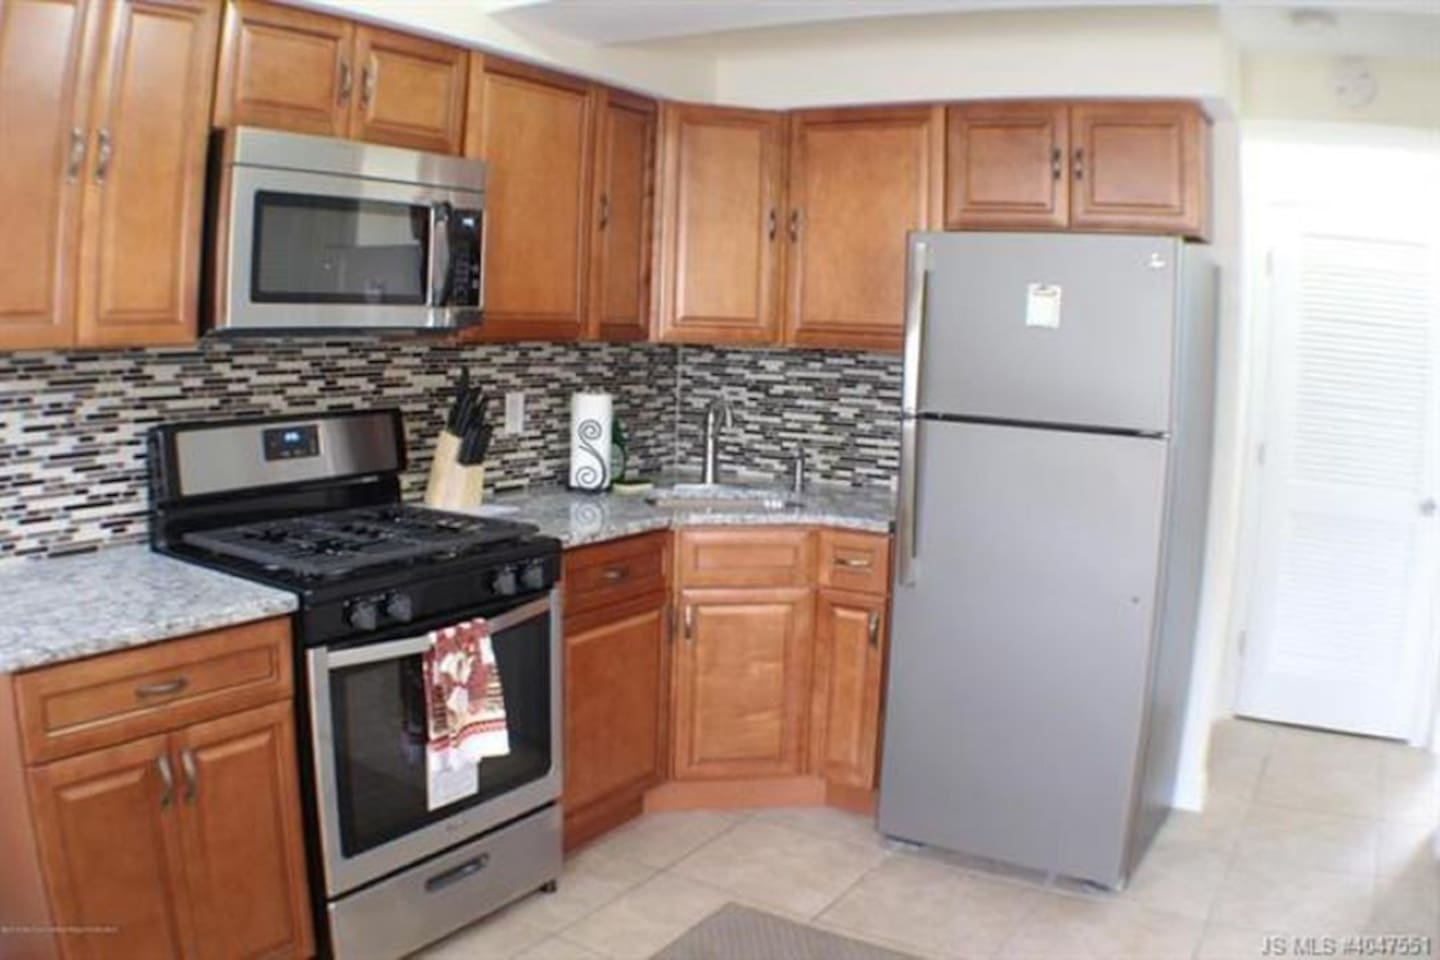 Stainless steel appliances, microwave, coffee maker, granite counters. Renovated in 2018 !